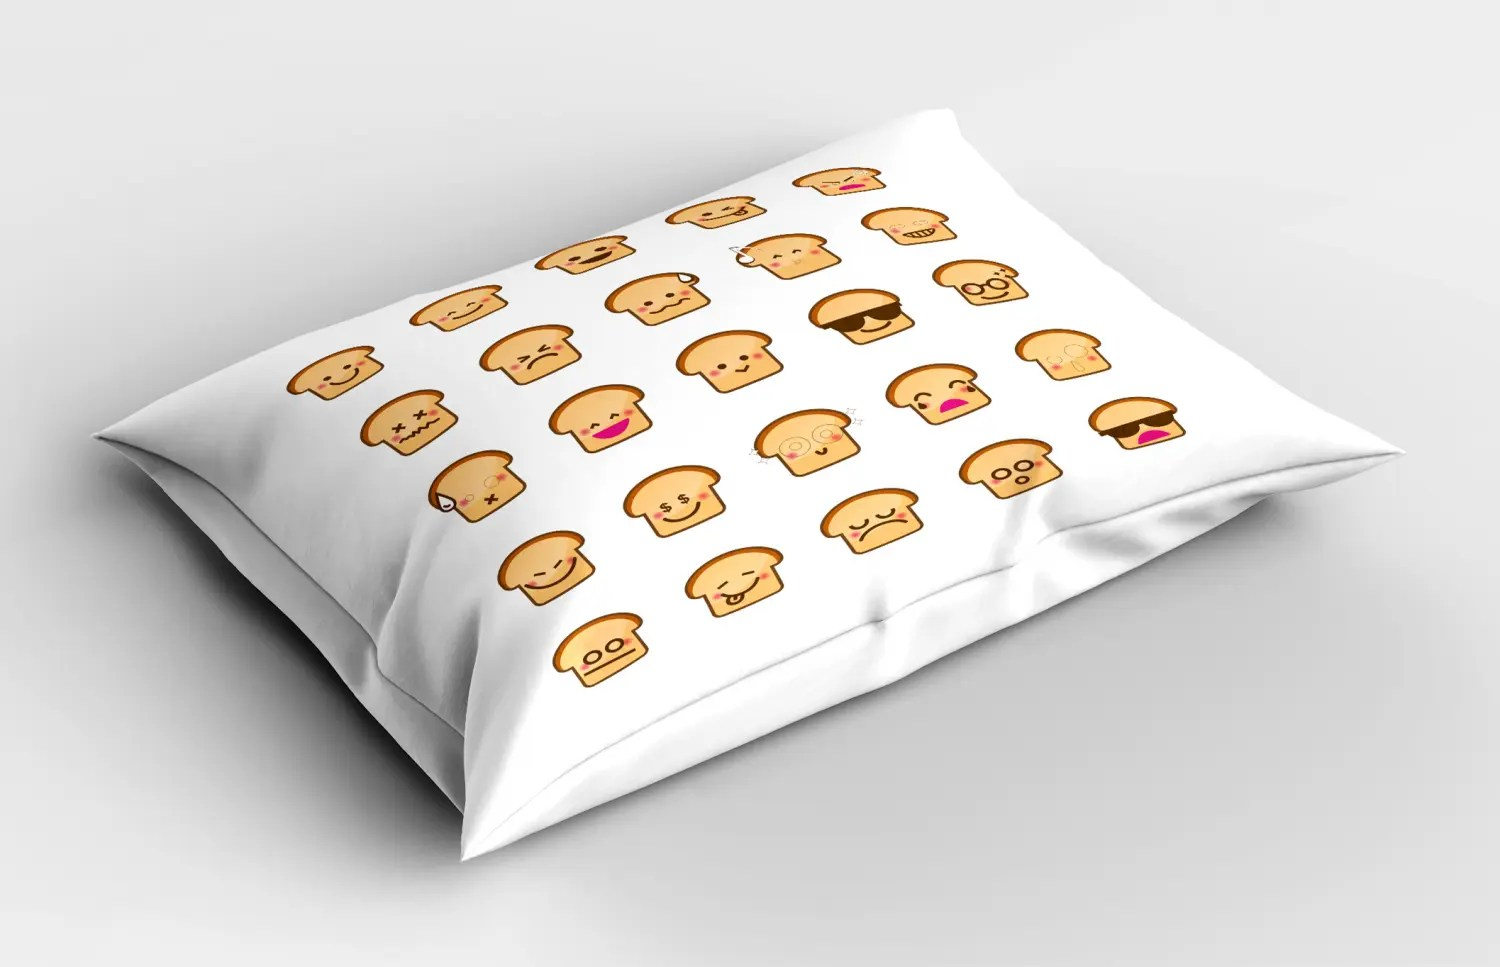 Cartoon Emoji Pillow Sham Decorative Pillowcase 3 Sizes